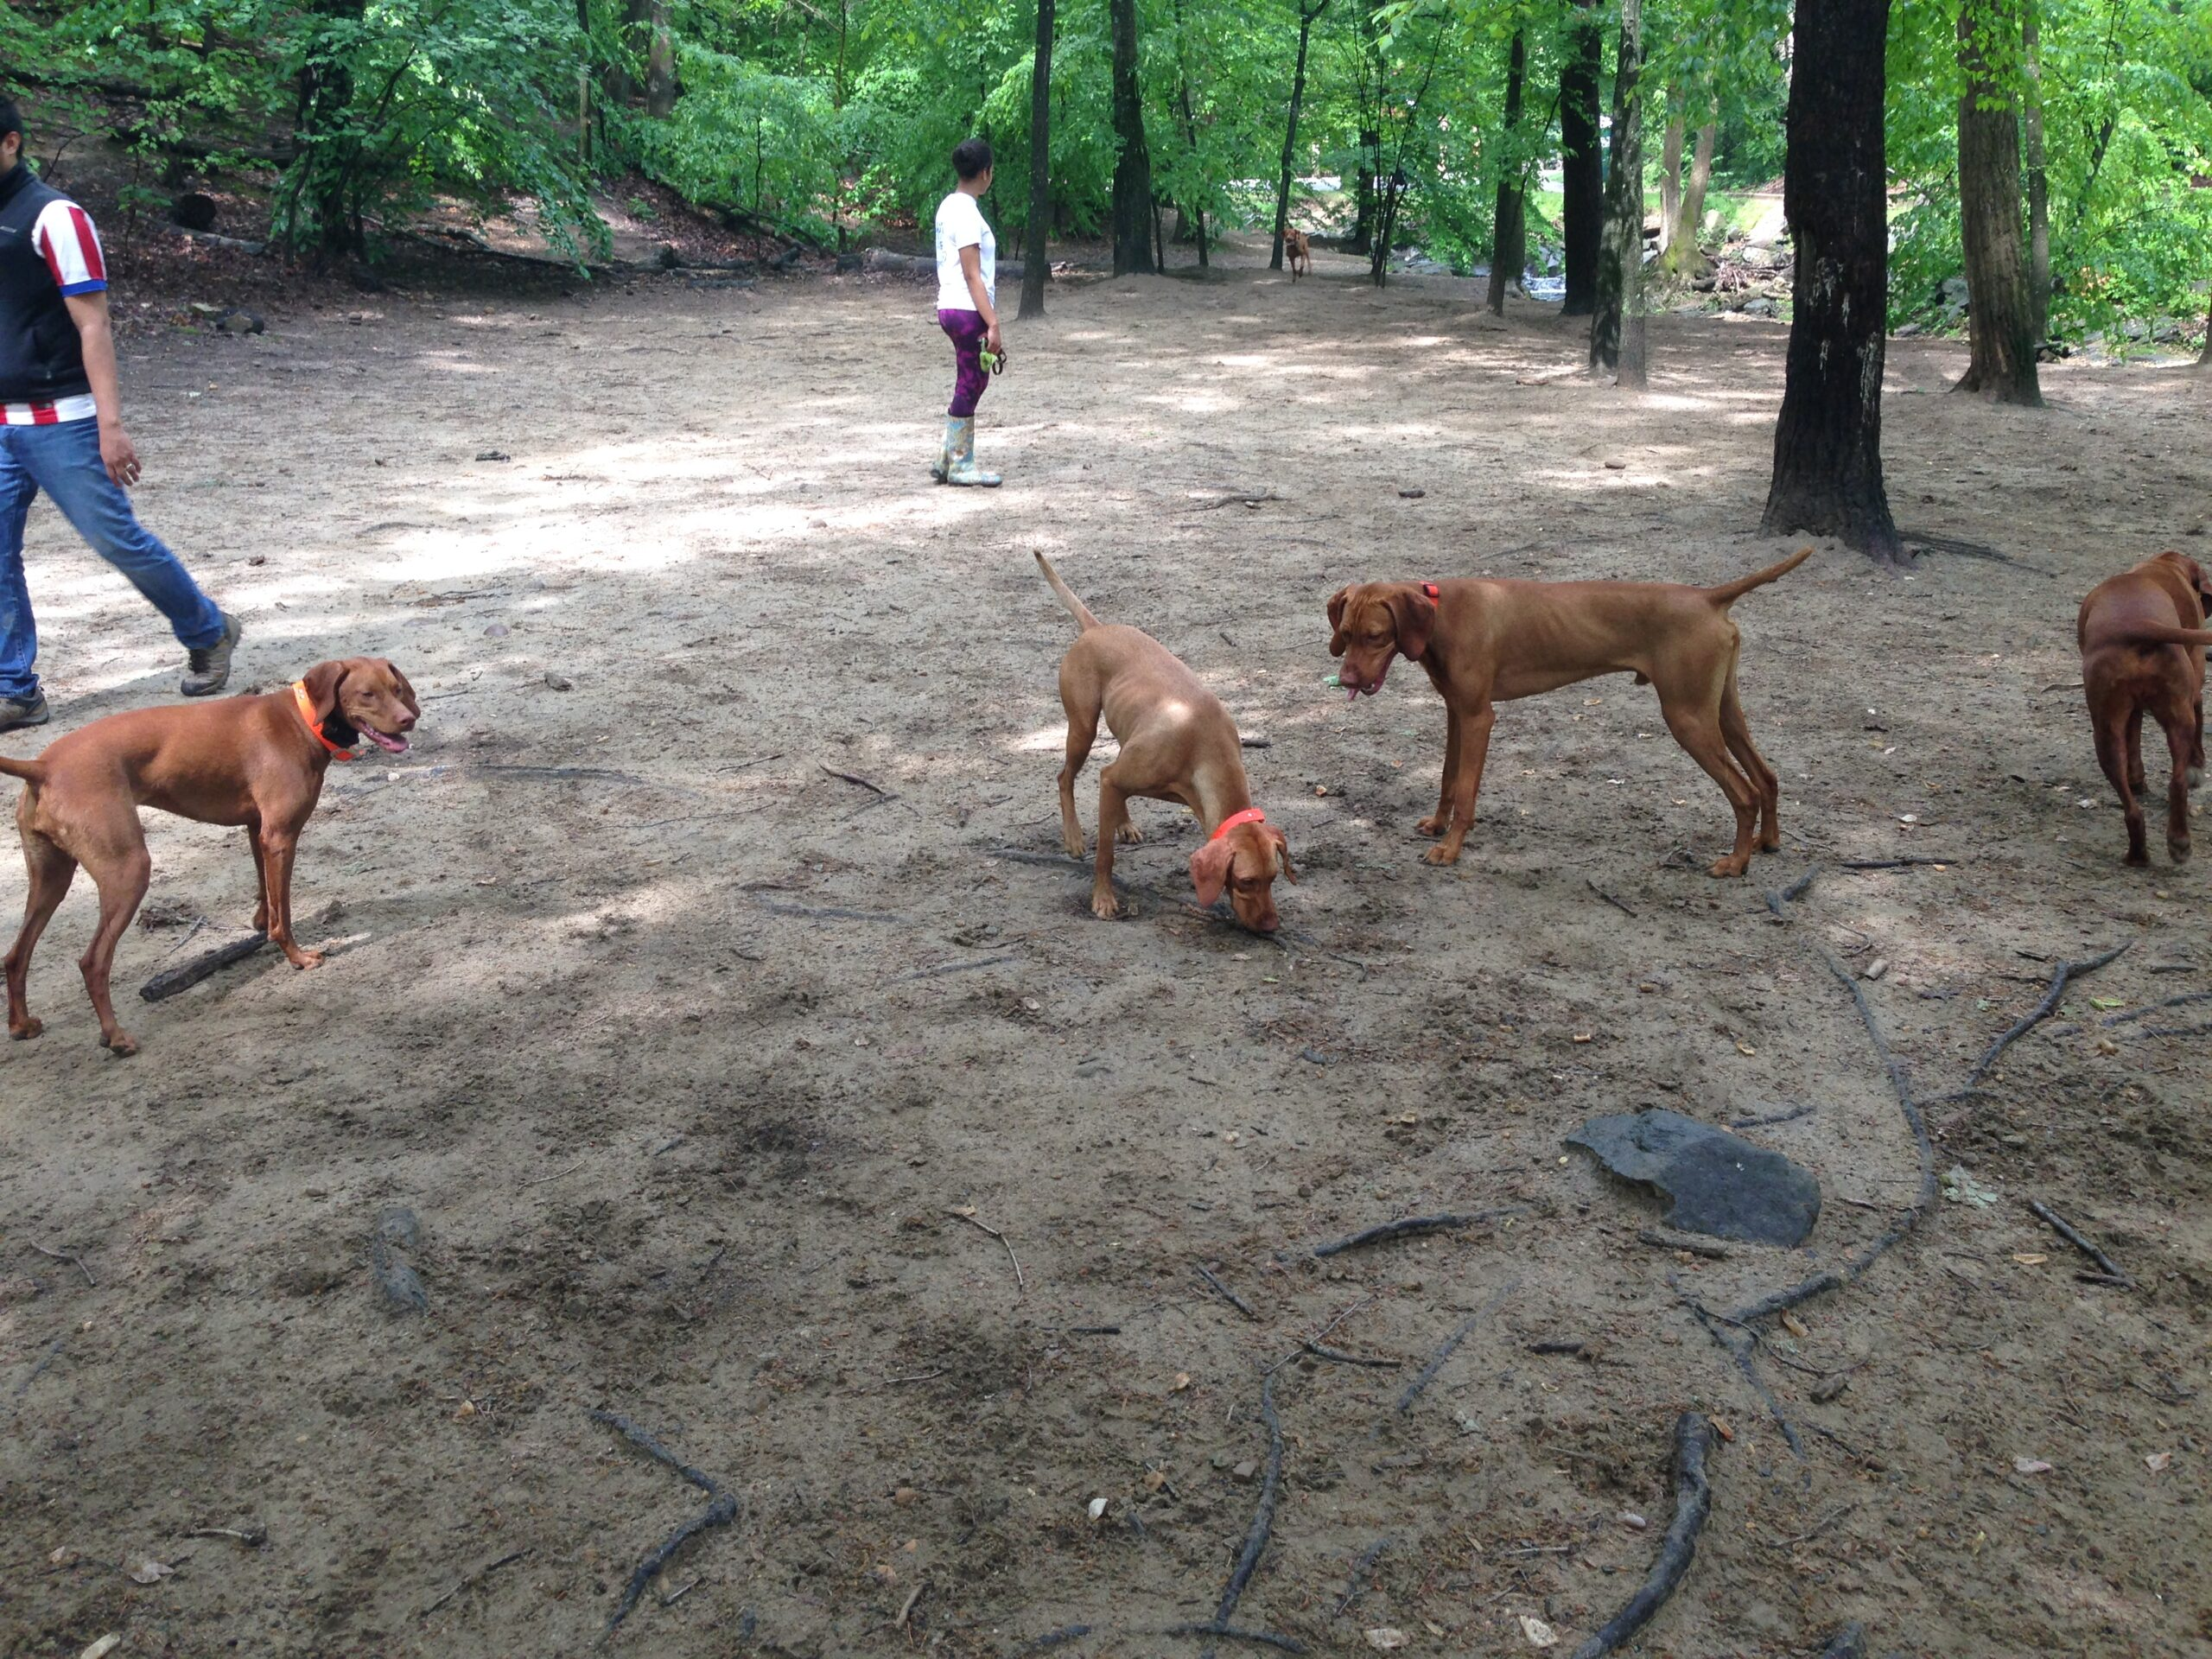 Dog Parks Are Not Appropriate for Most Dogs